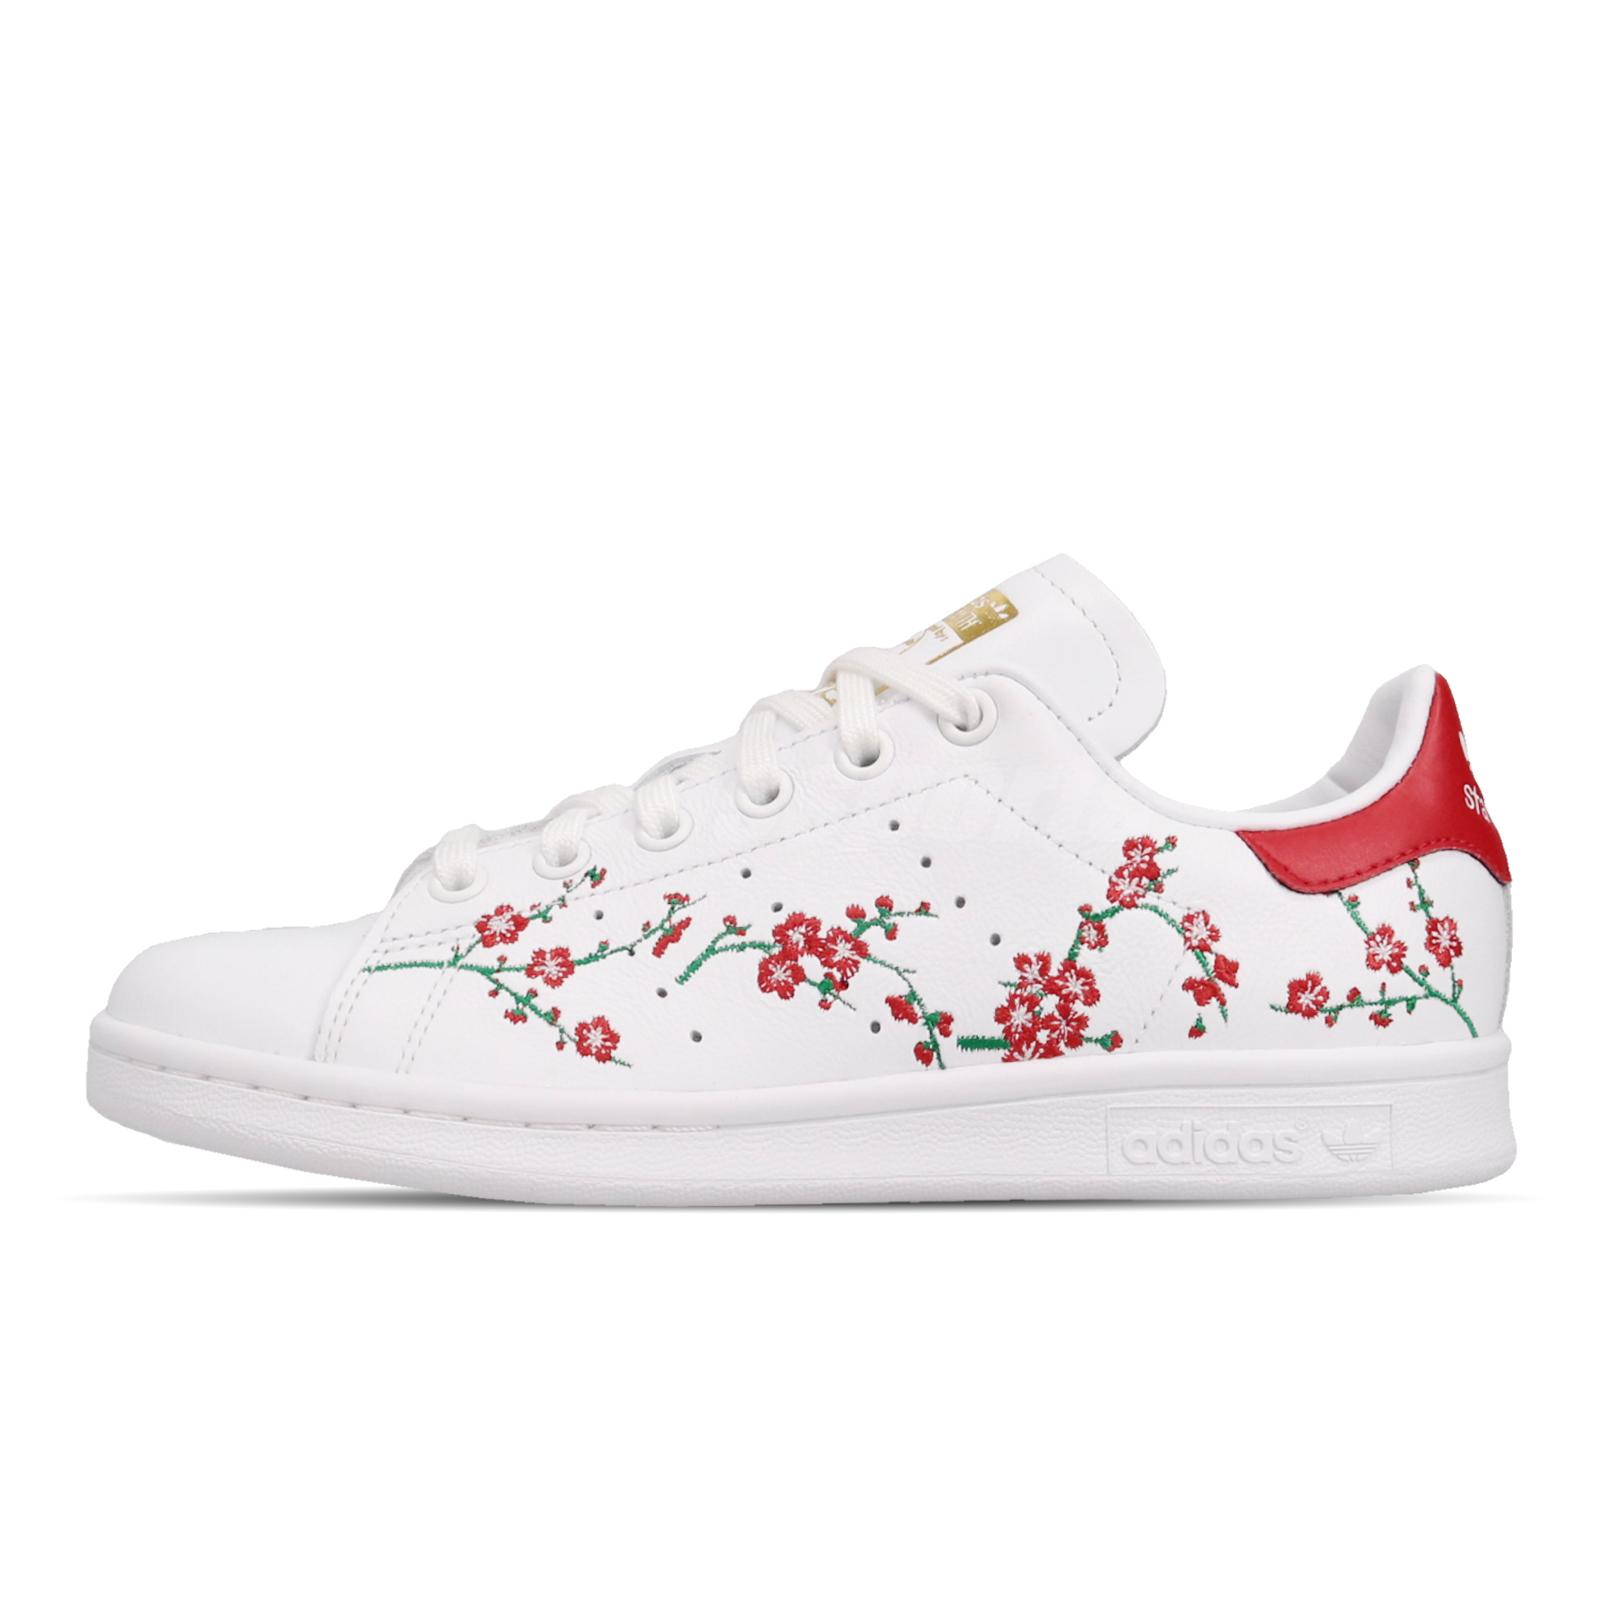 adidas Originals Stan Smith W Floral White Red Women Casual Shoes